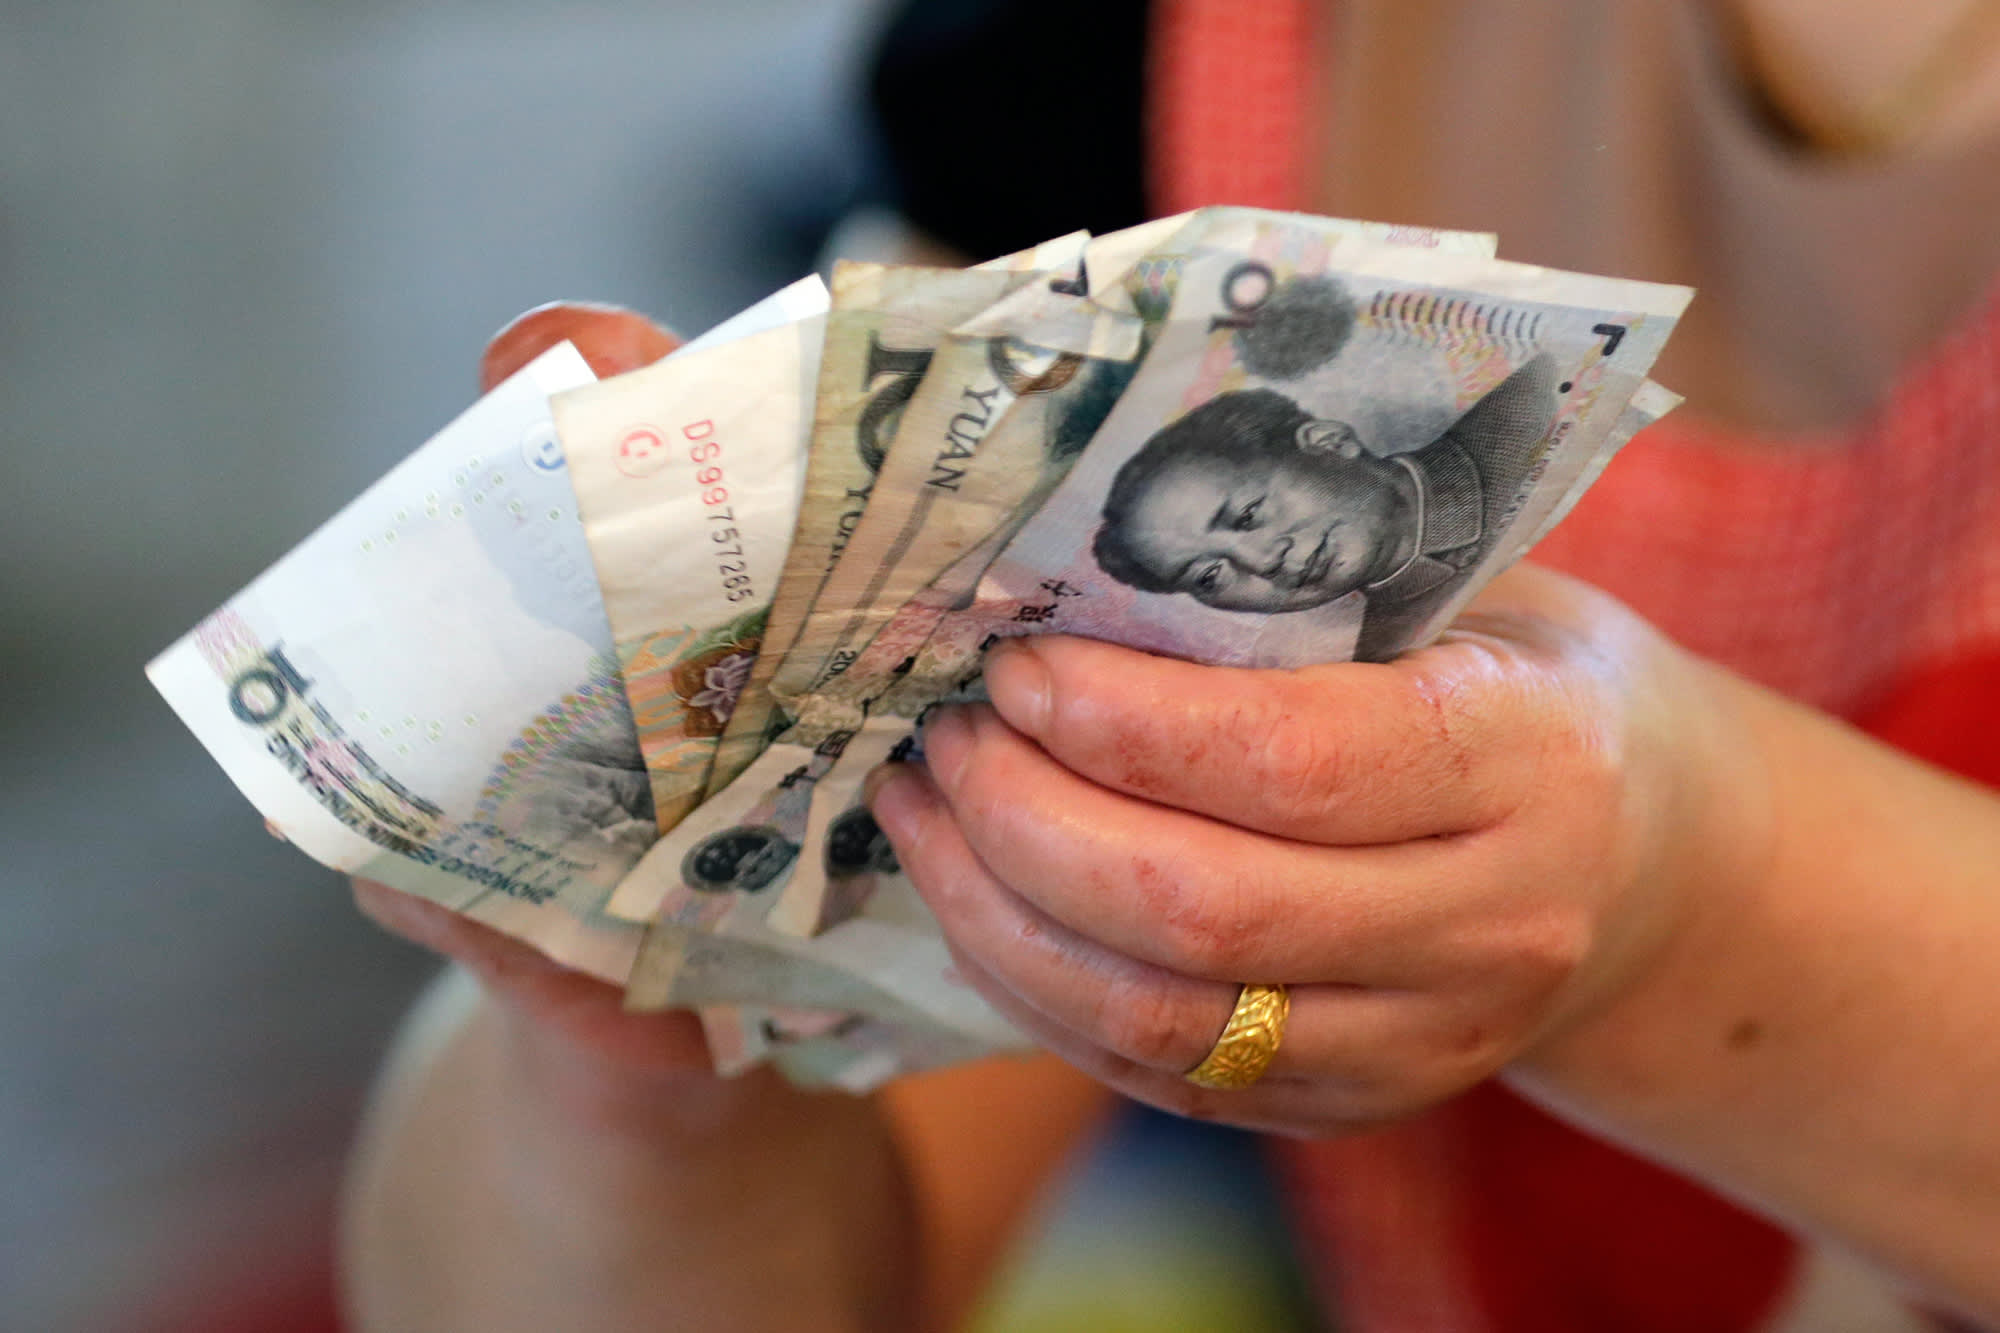 Daiwa why chinas currency yuan renminbi could get wobbly buycottarizona Gallery